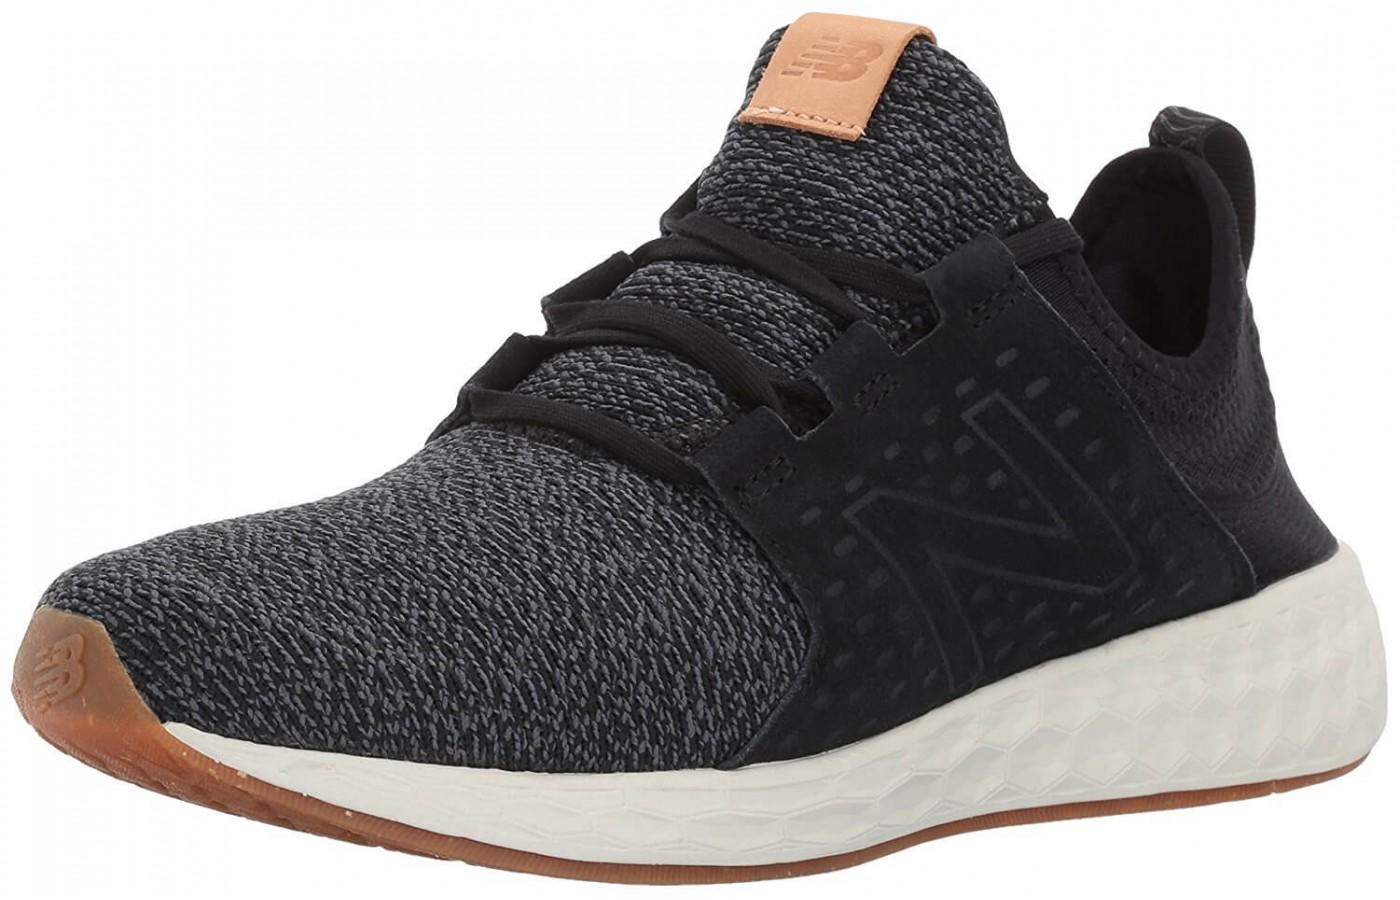 the New Balance Fresh Foam Cruz is a stylish and comfortable trainer ...